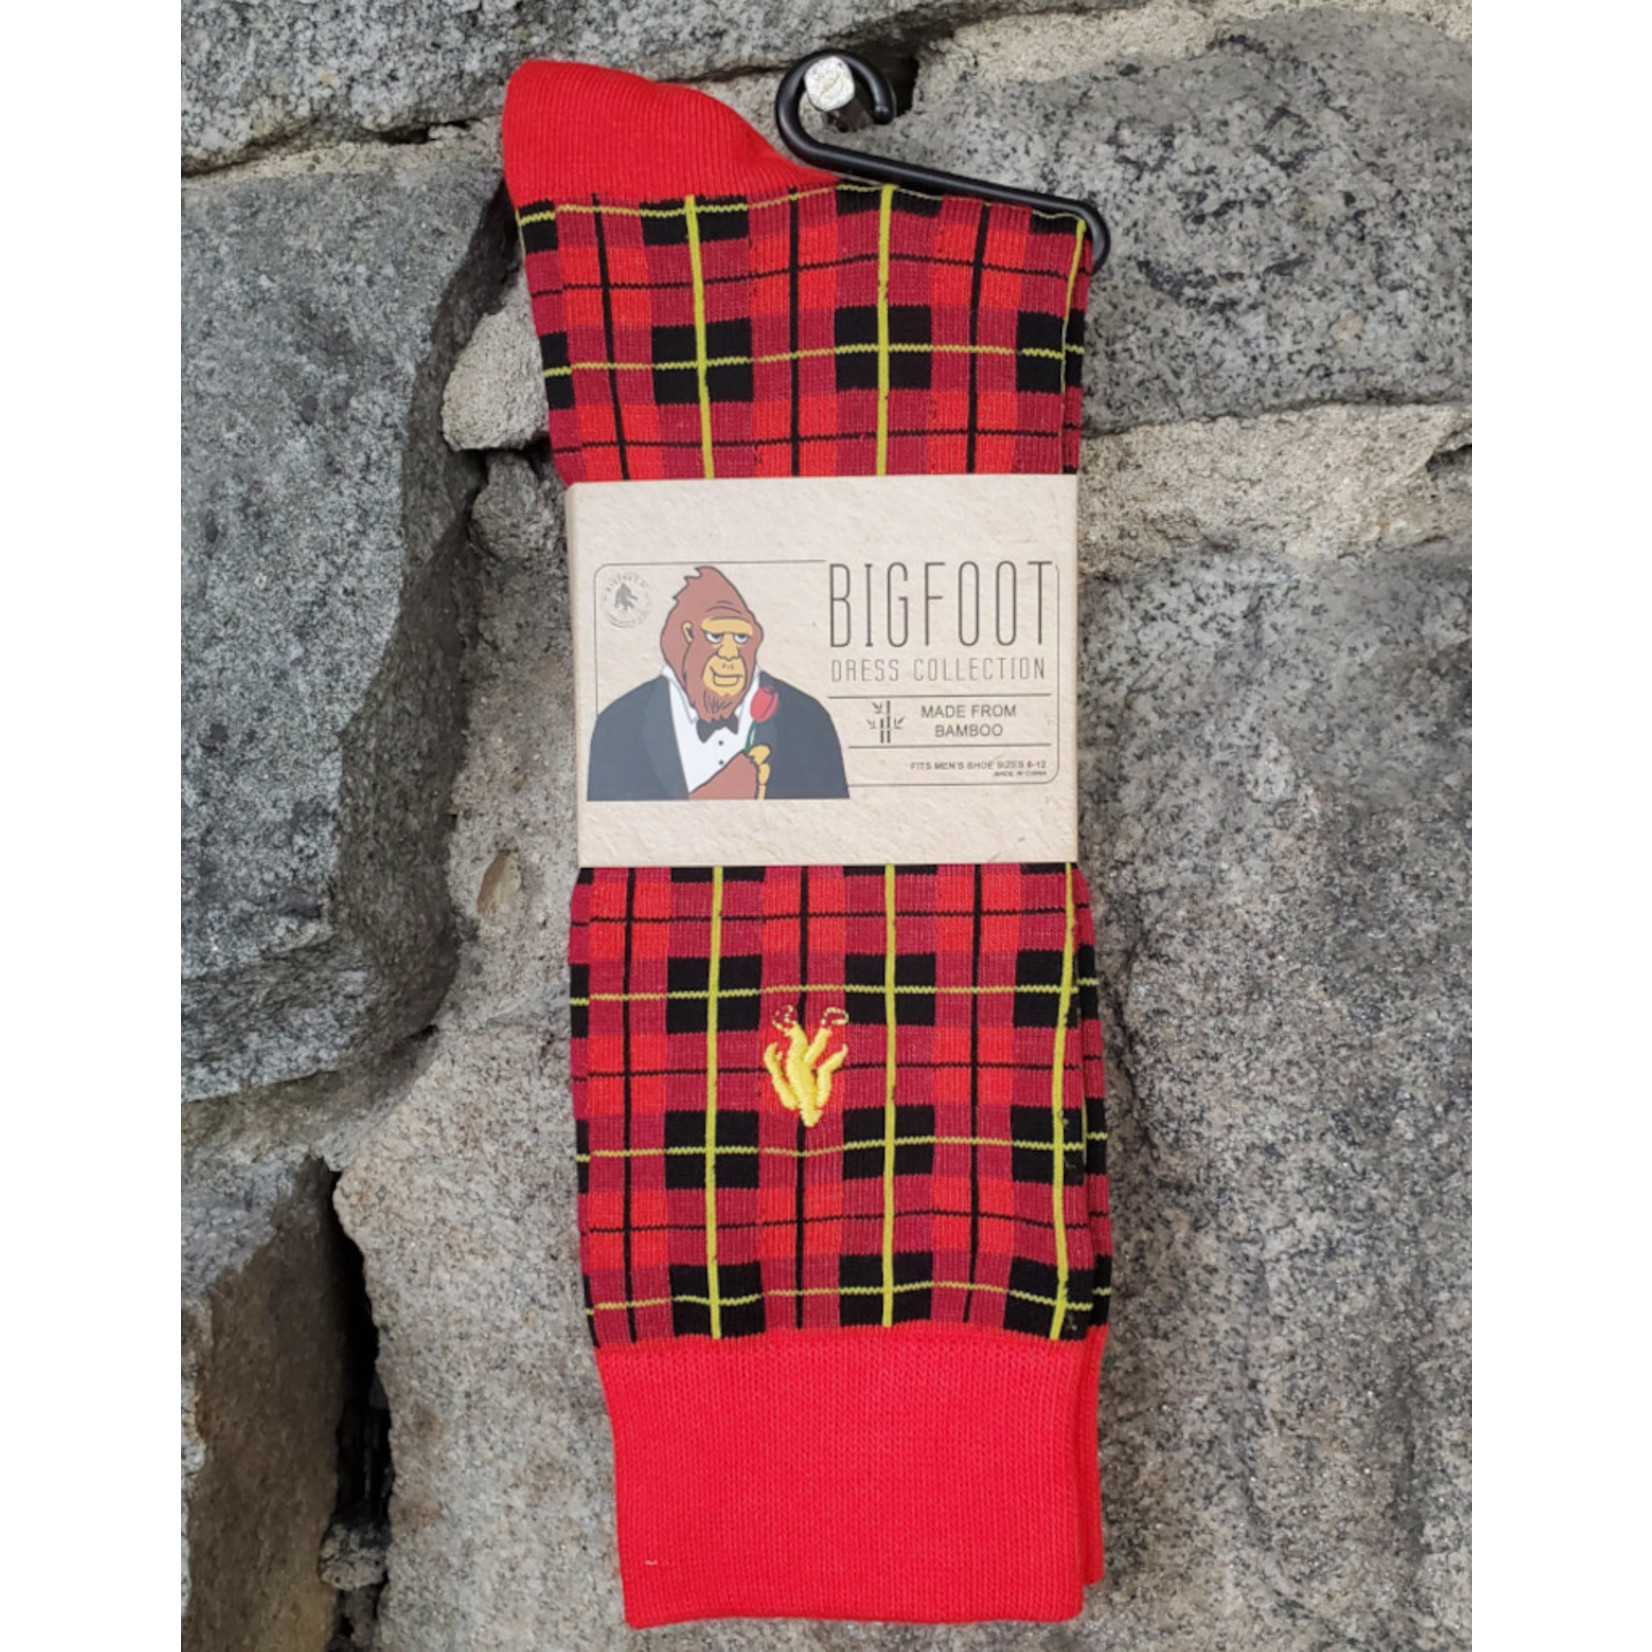 Bigfoot Bigfoot Socks - Bamboo Highland Dress